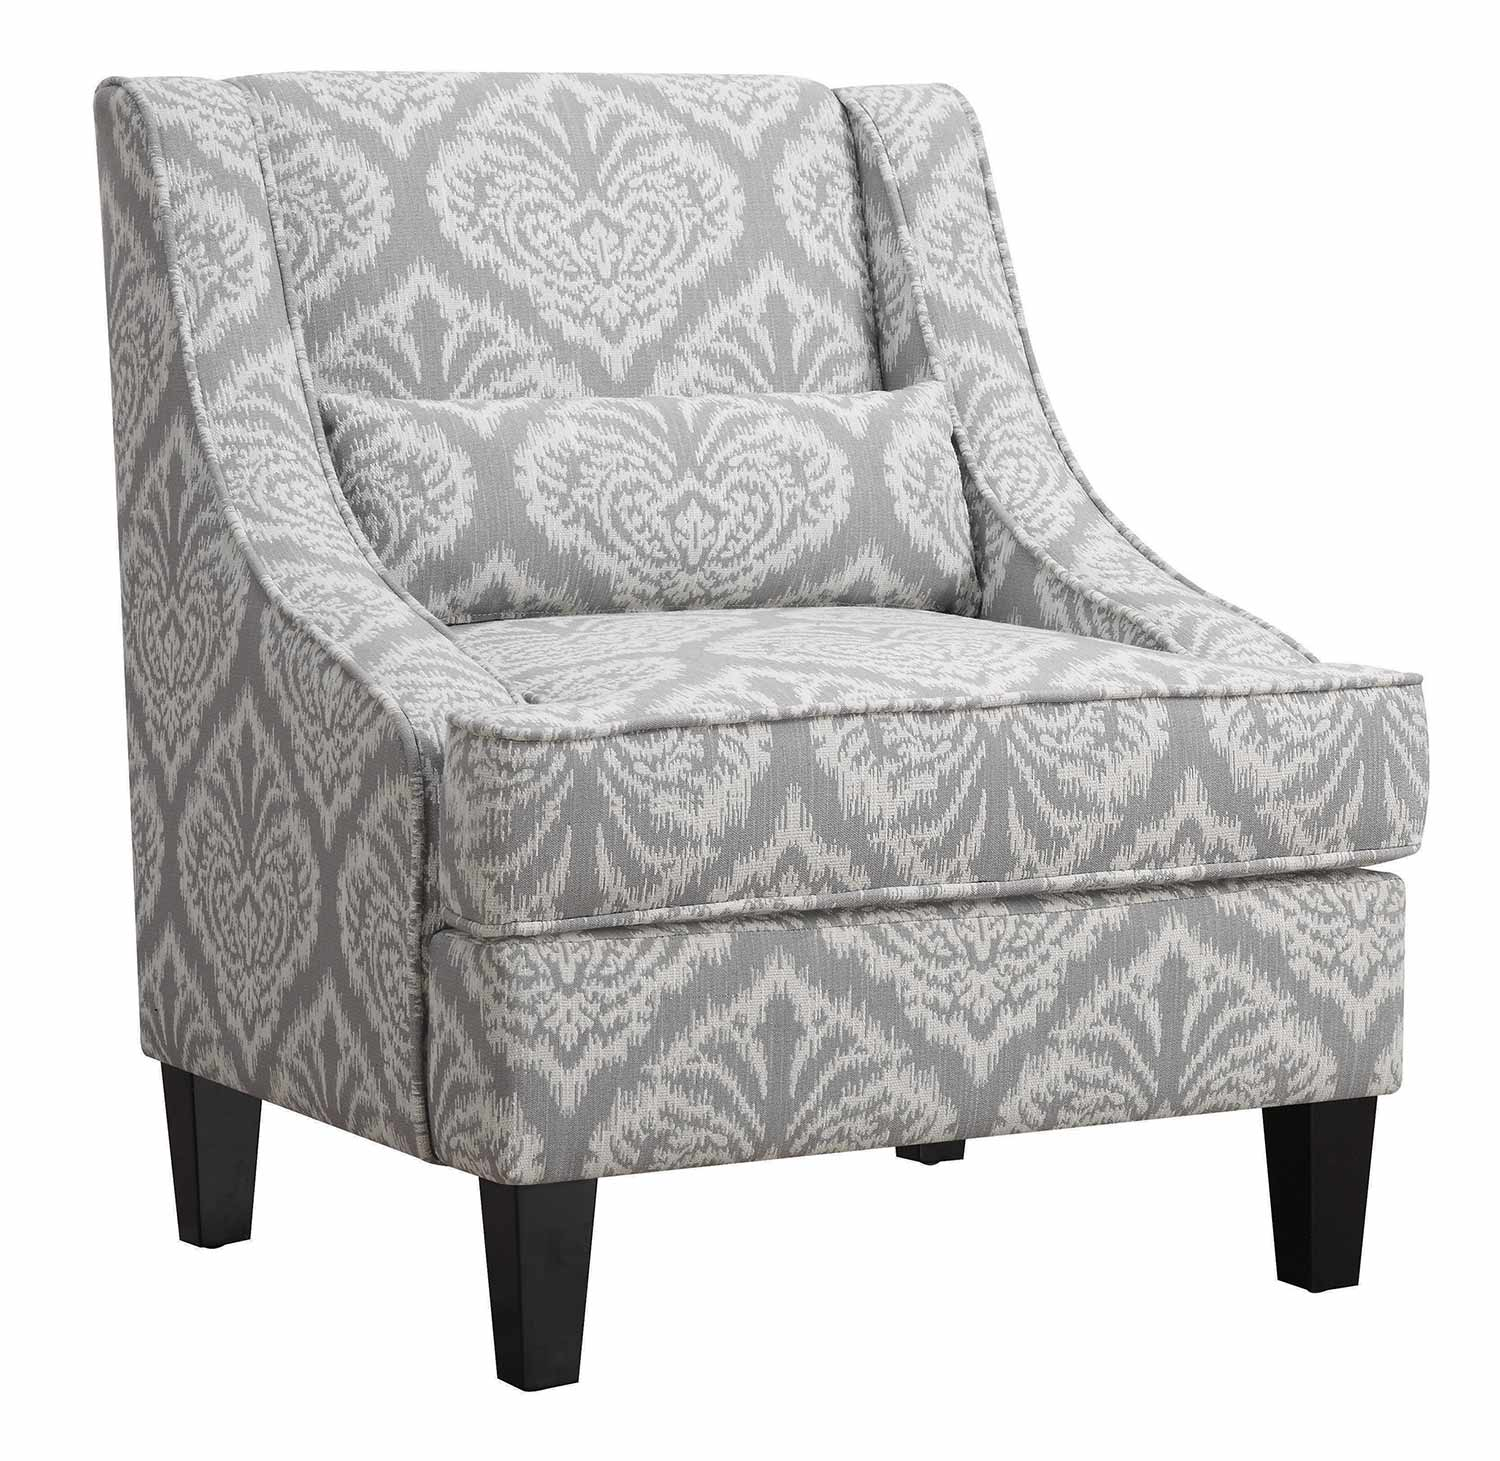 Coaster 902412 Accent Chair - Grey